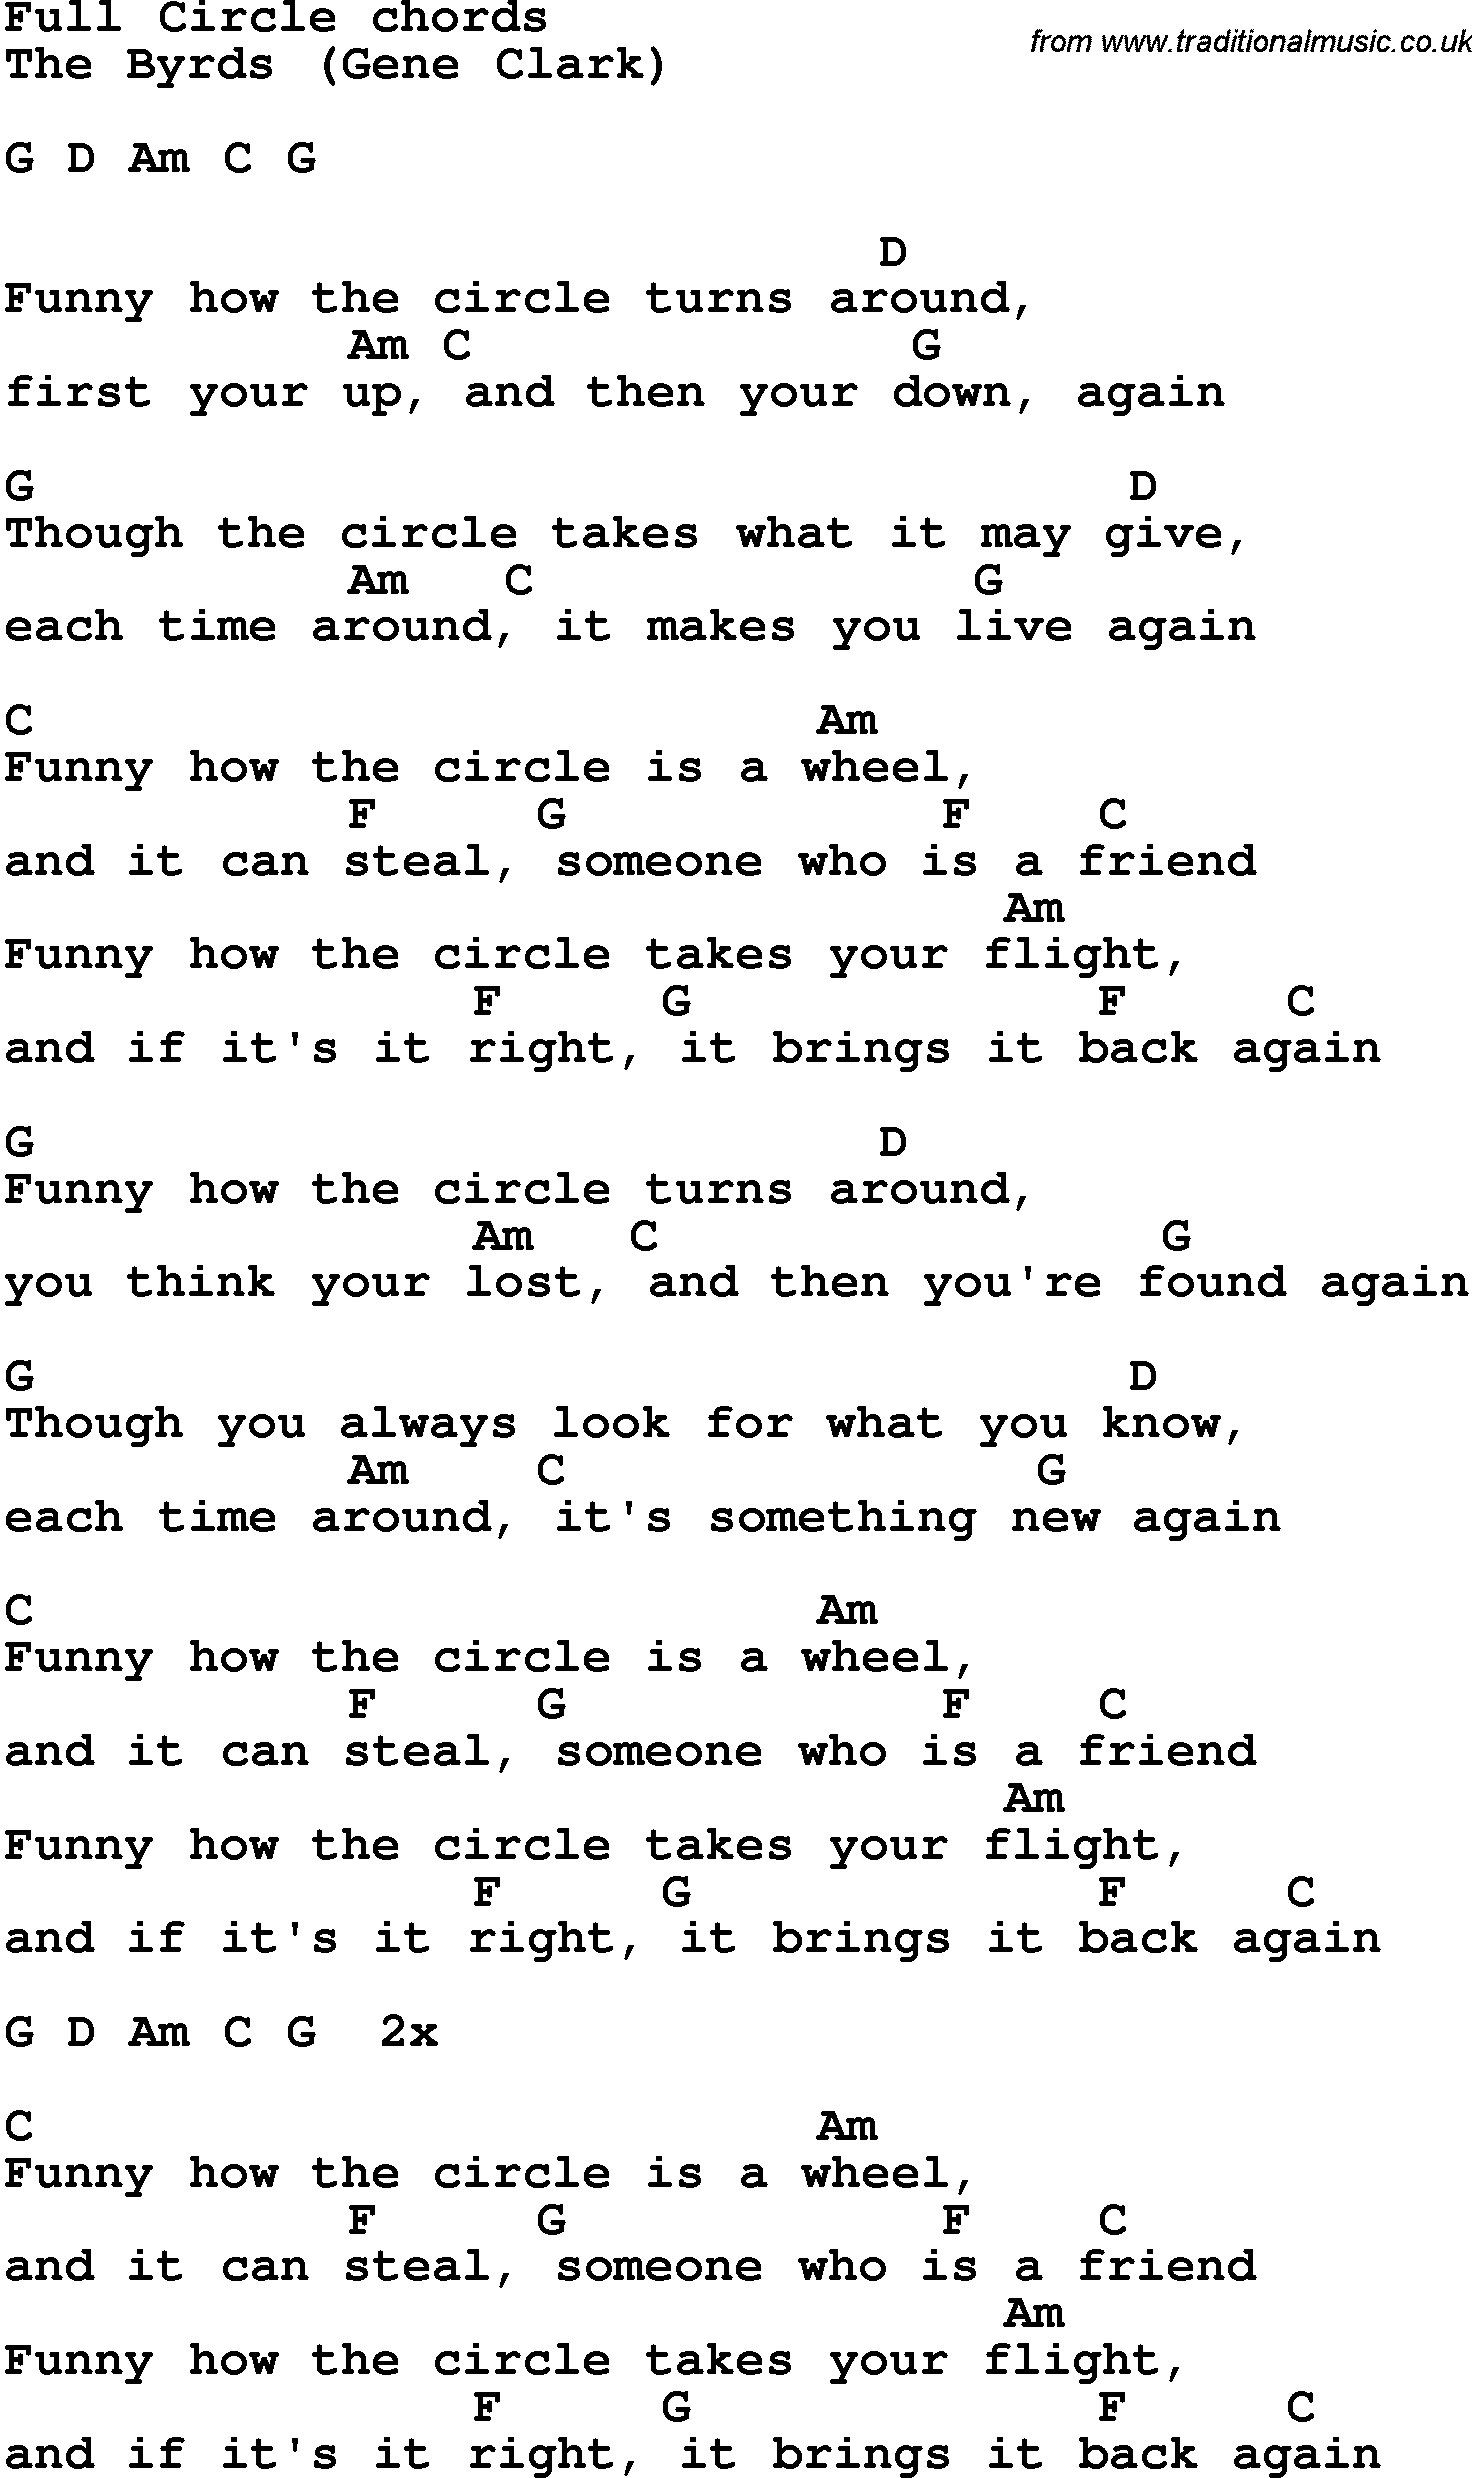 Song lyrics with guitar chords for full circle